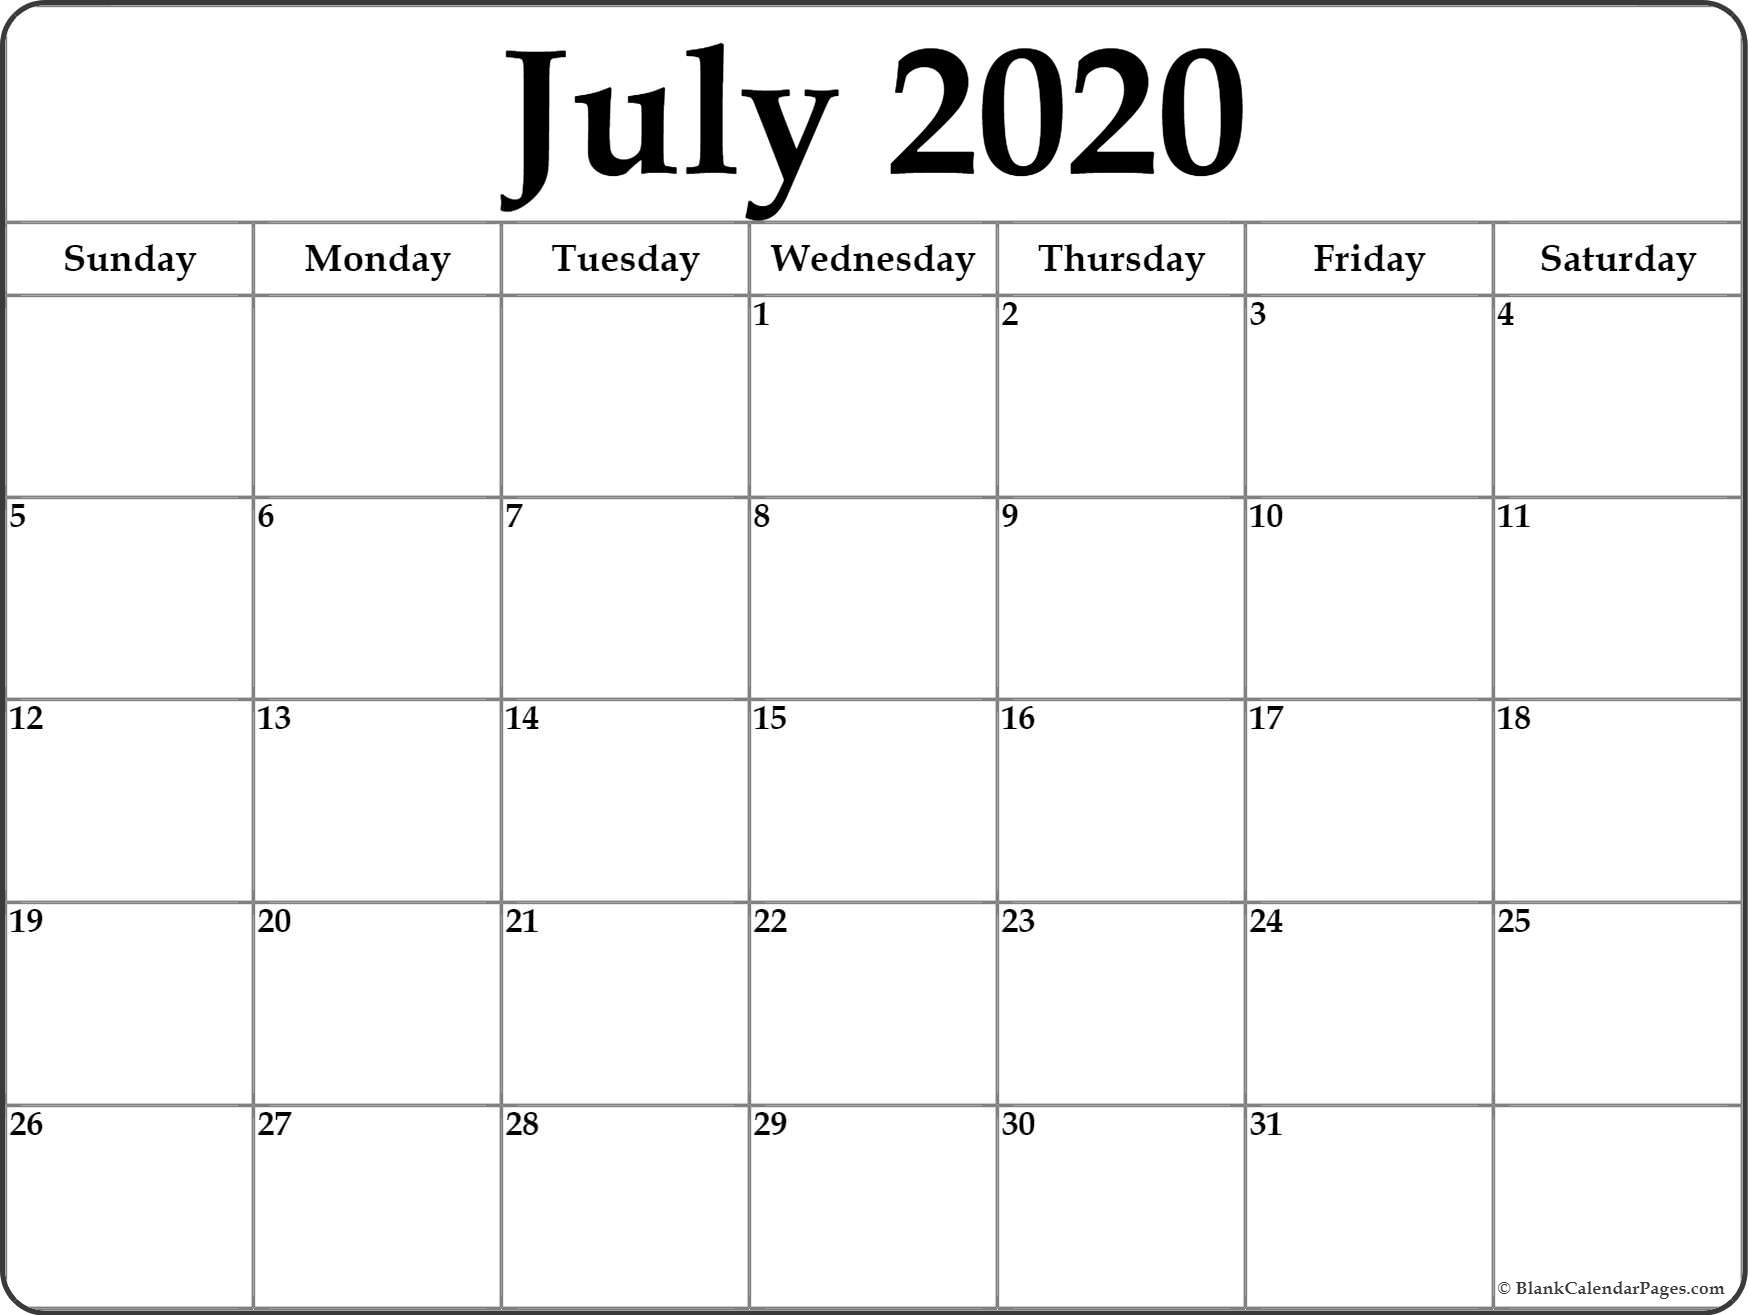 July 2020 Calendar | Free Printable Monthly Calendars-Blank Monthly Calendar Printable July 2020